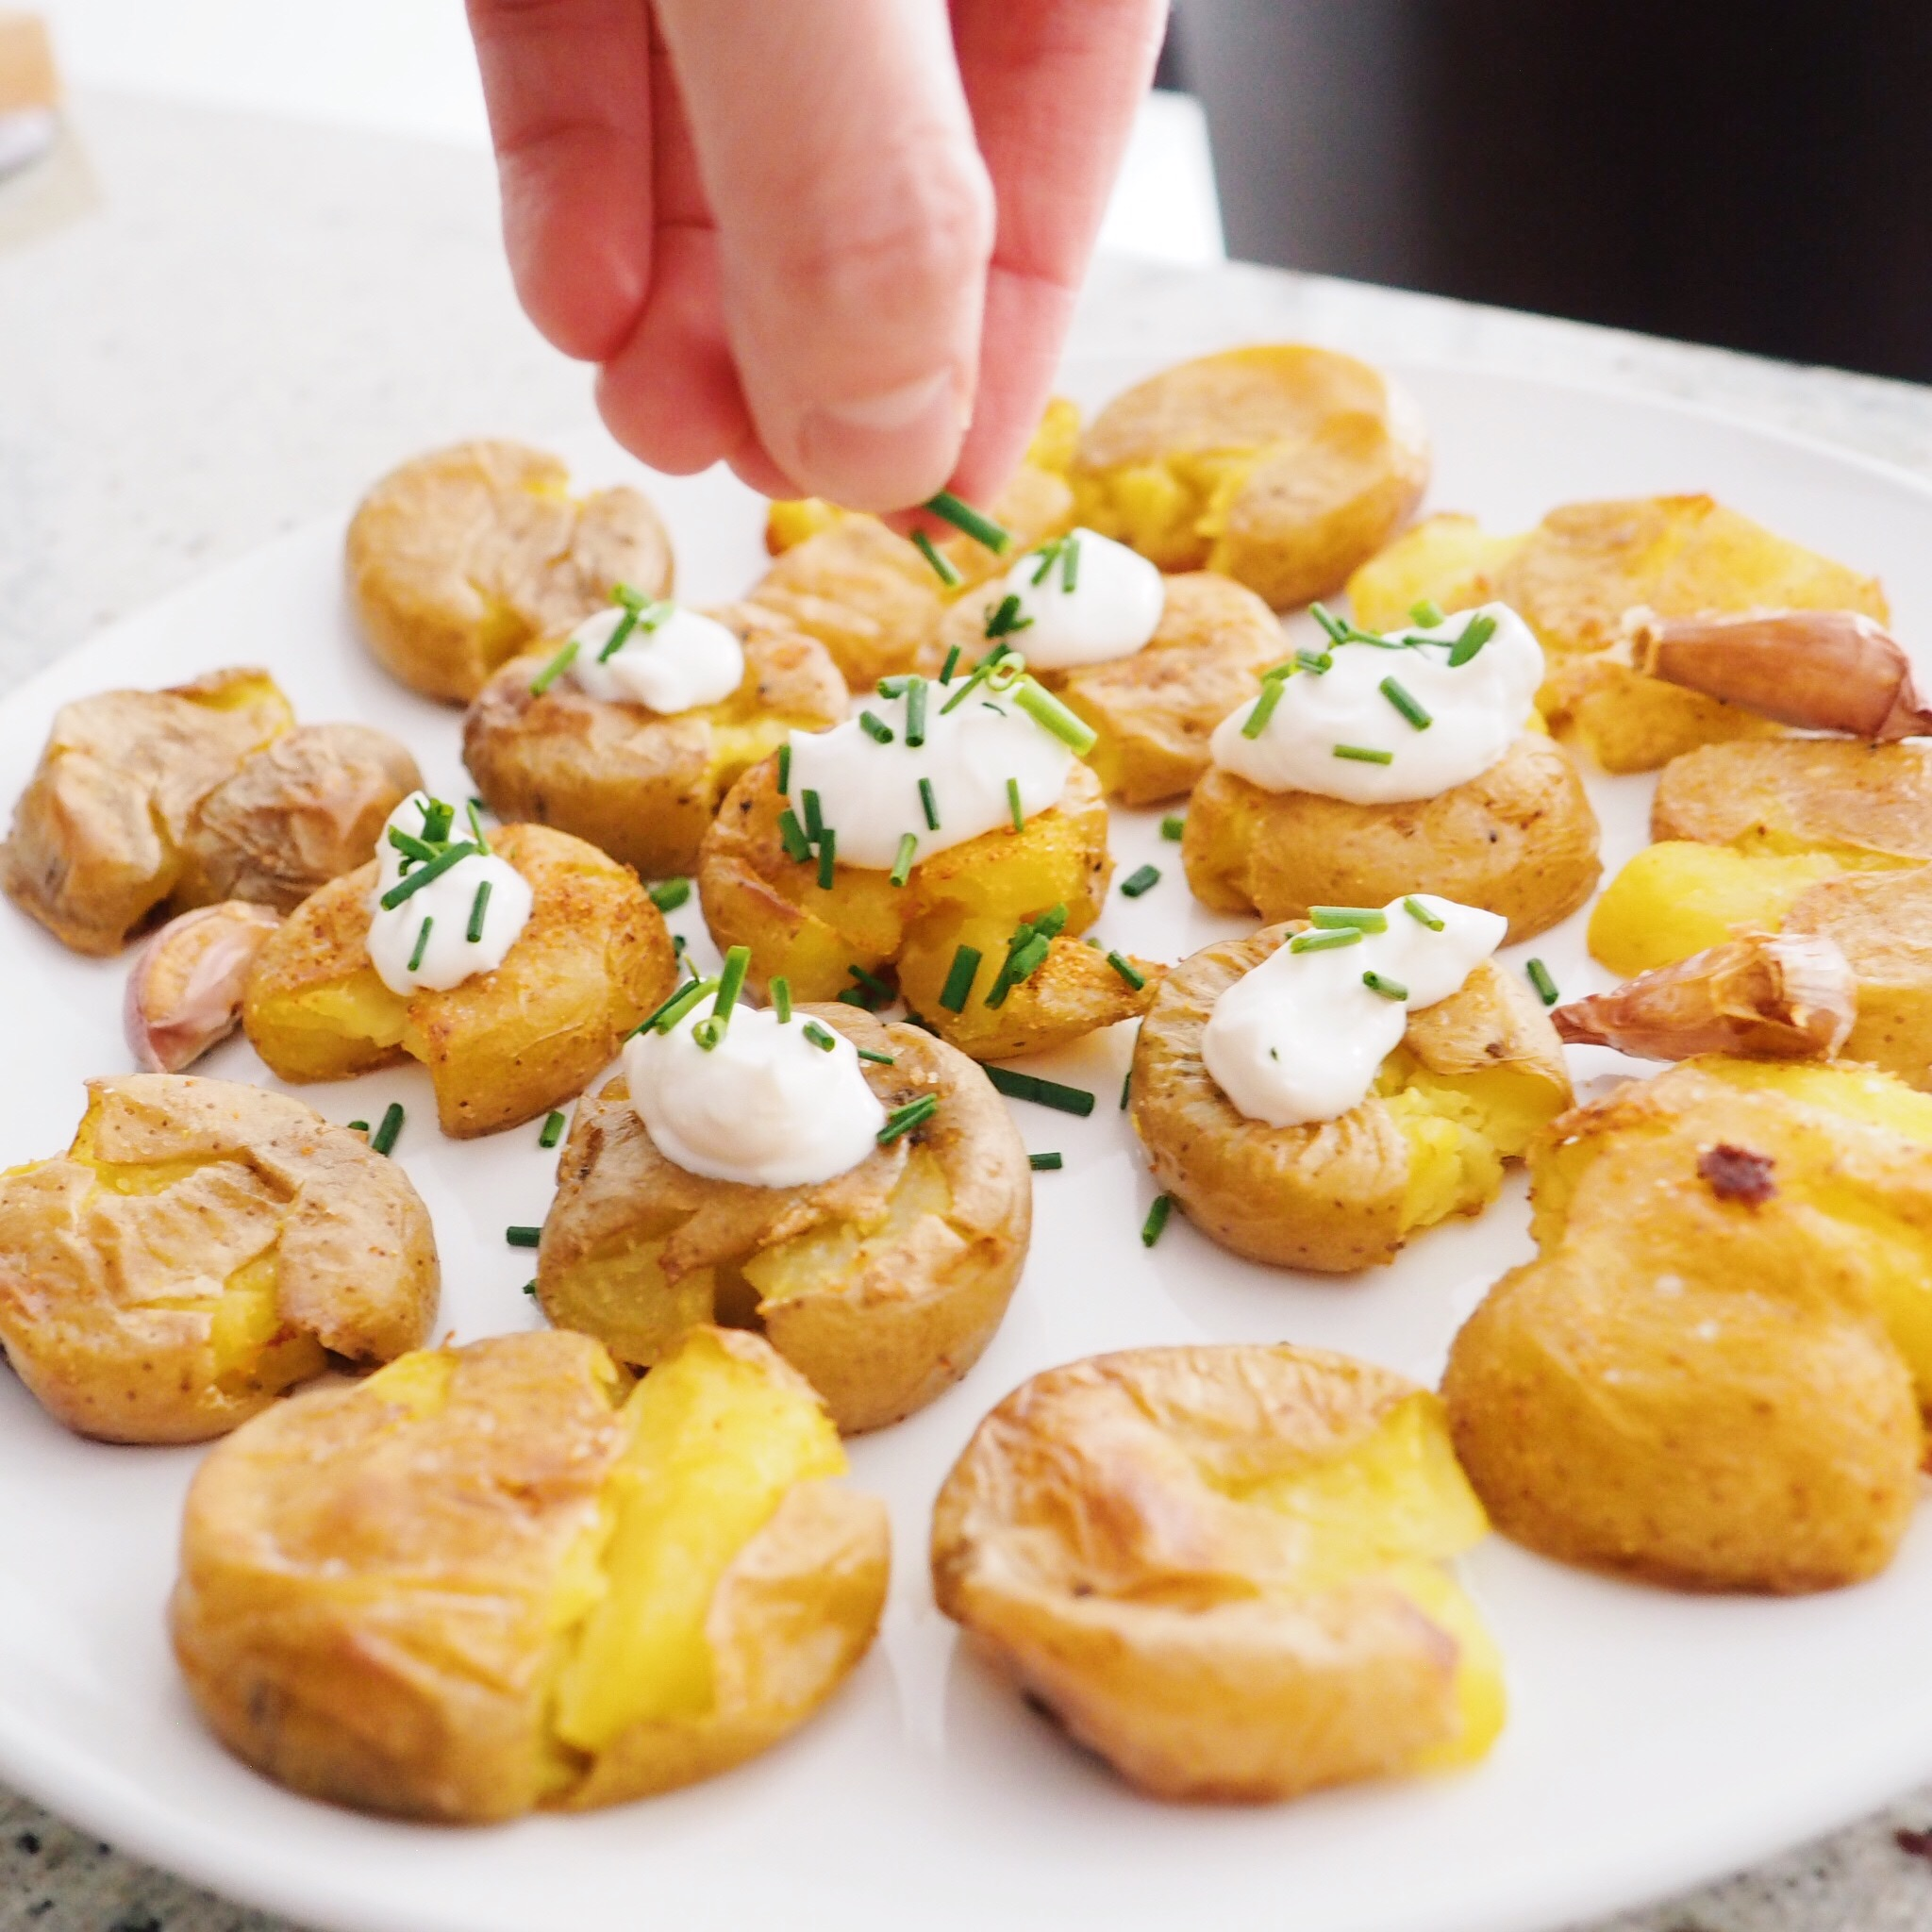 Step 11 - Plate your potatoes, add a dollop of sour cream to each one and garnish with fresh chives. Enjoy!